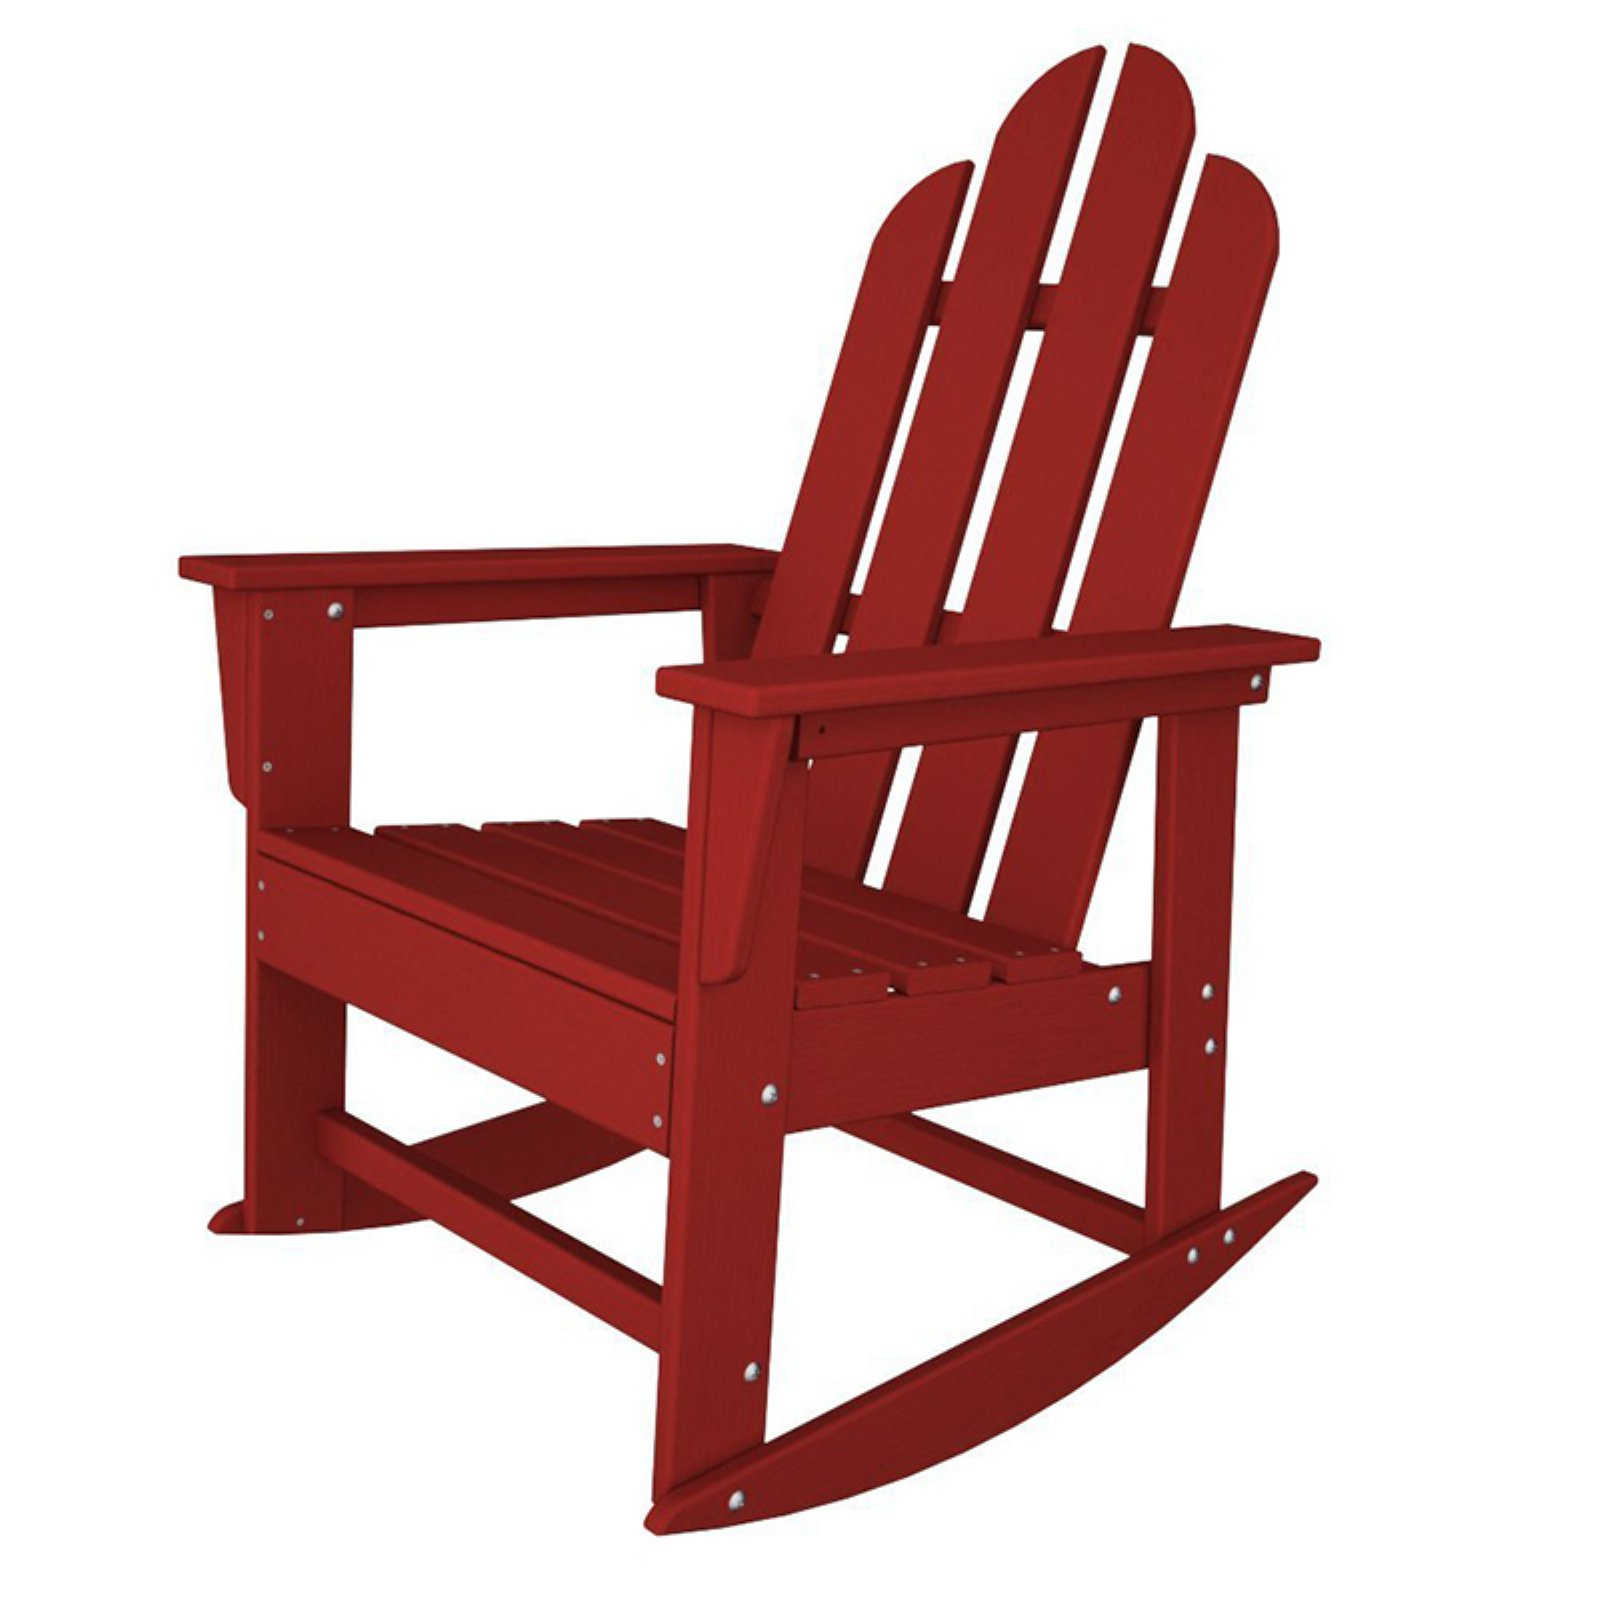 Superb Outdoor Polywooda Long Island Recycled Plastic Adirondack Pdpeps Interior Chair Design Pdpepsorg